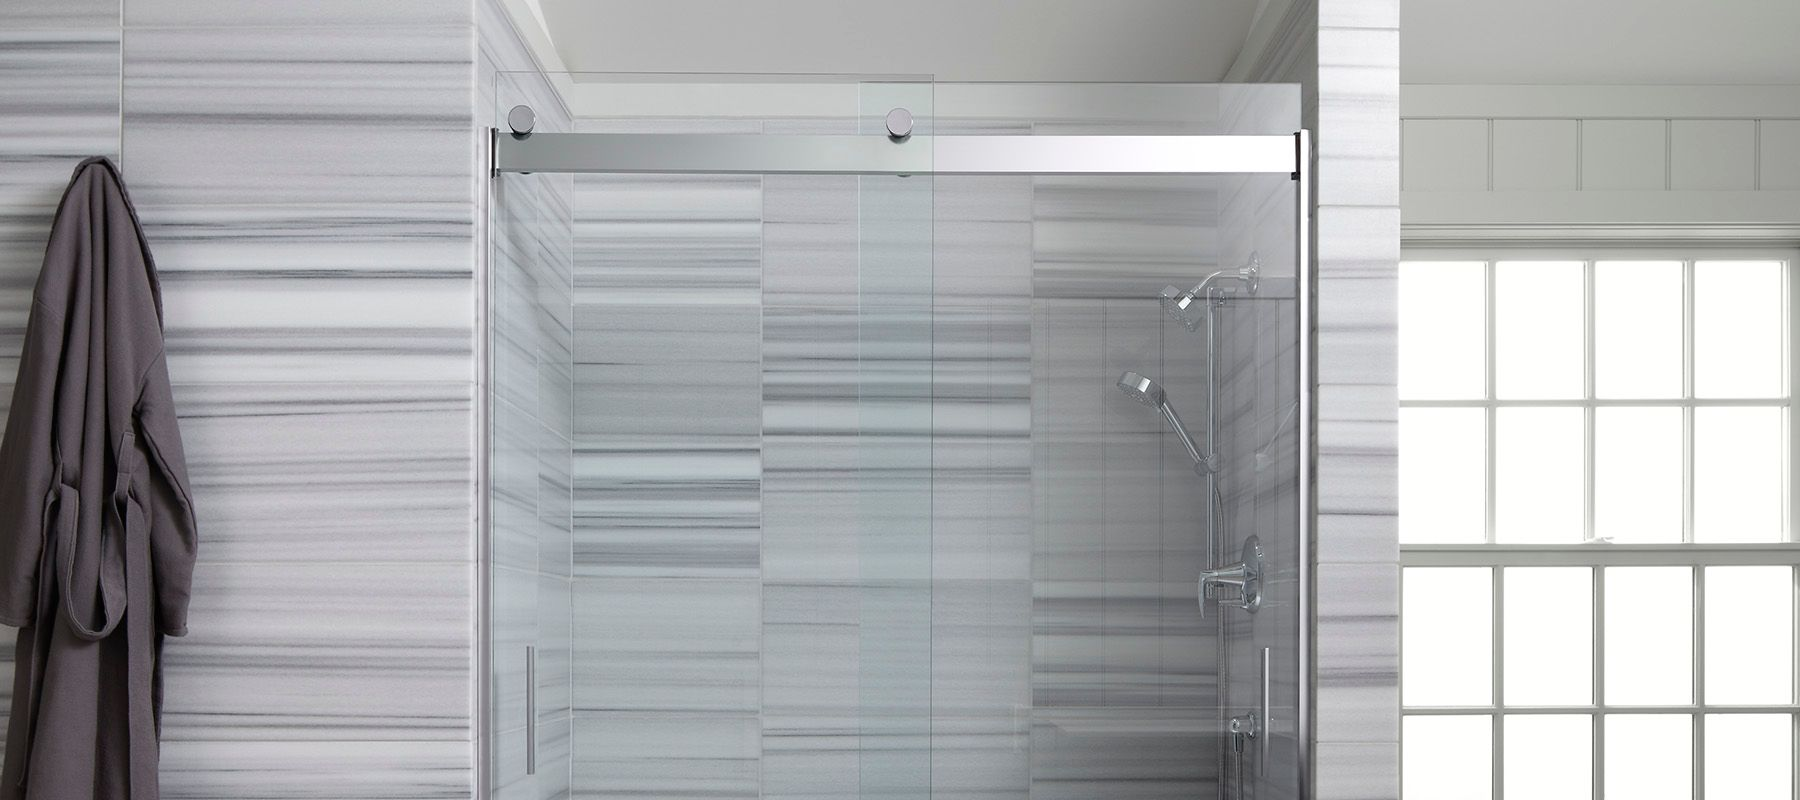 Sleek Showering Solutions & Shower Doors | Showering |Bathroom | KOHLER